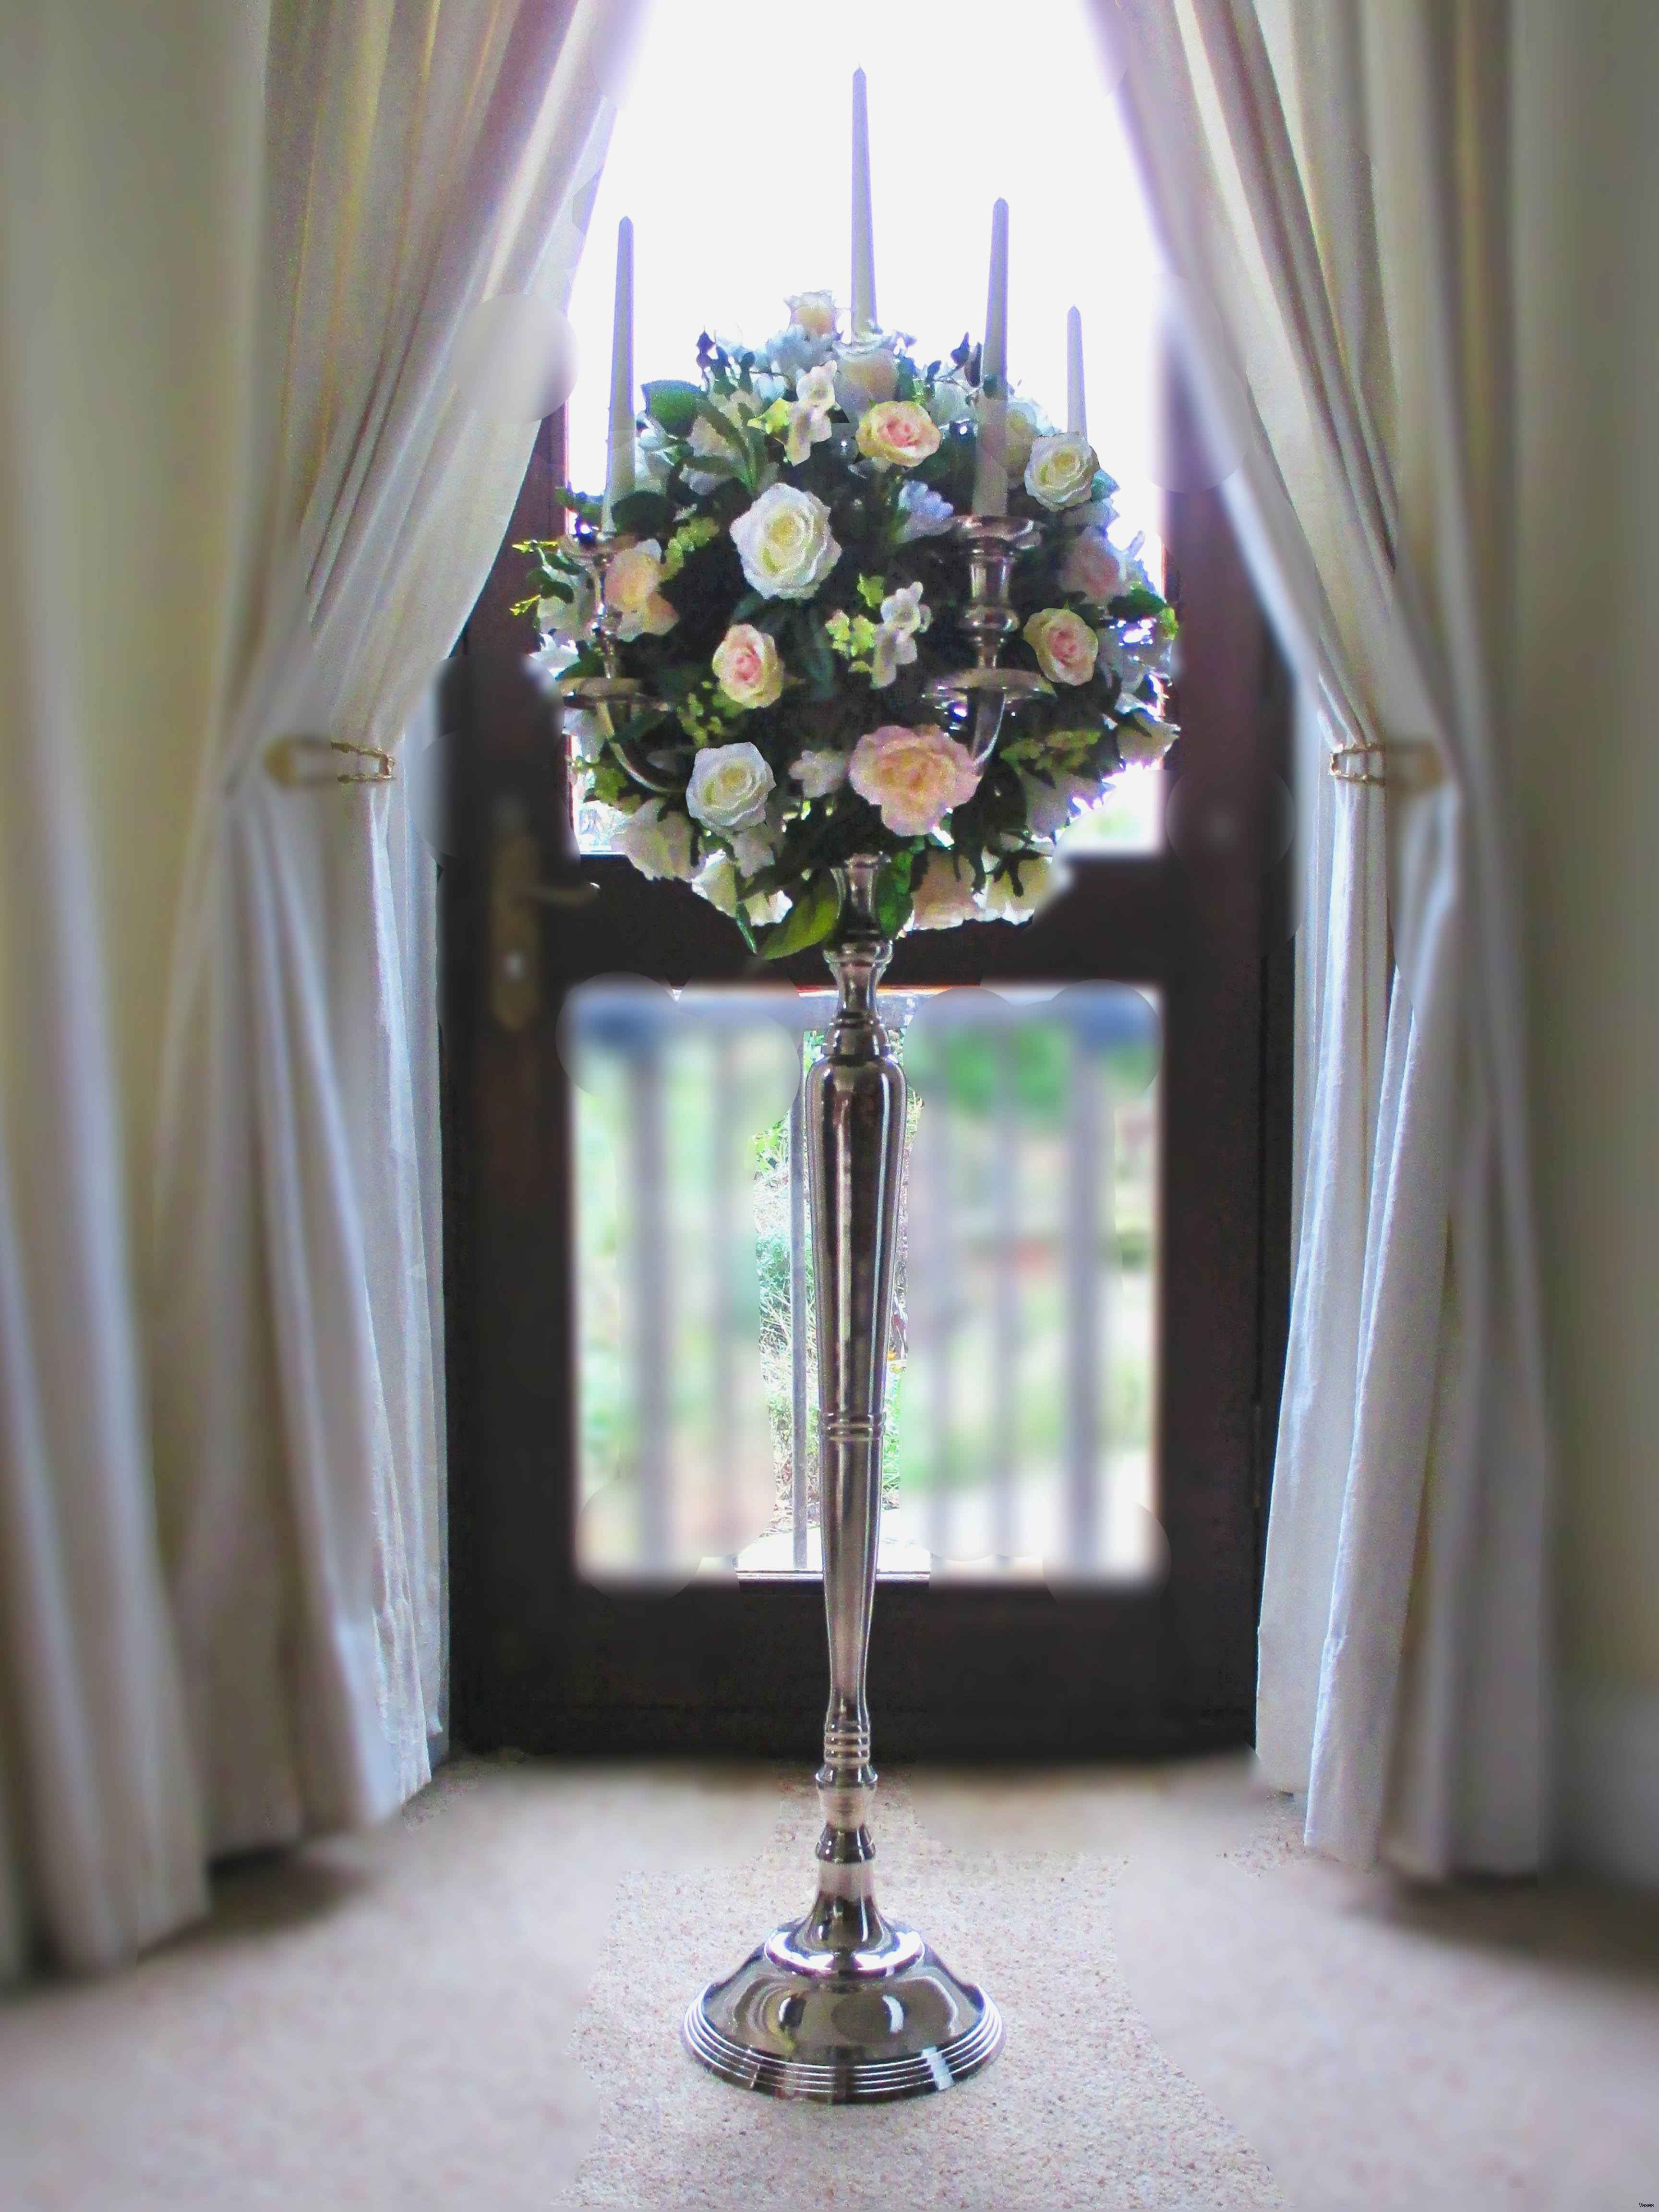 flower bud vases wholesale of fall flowers for wedding beautiful dollar tree wedding decorations throughout fall flowers for wedding awesome cheap wedding bouquets packages 5397h vases silver vase leeds i 0d